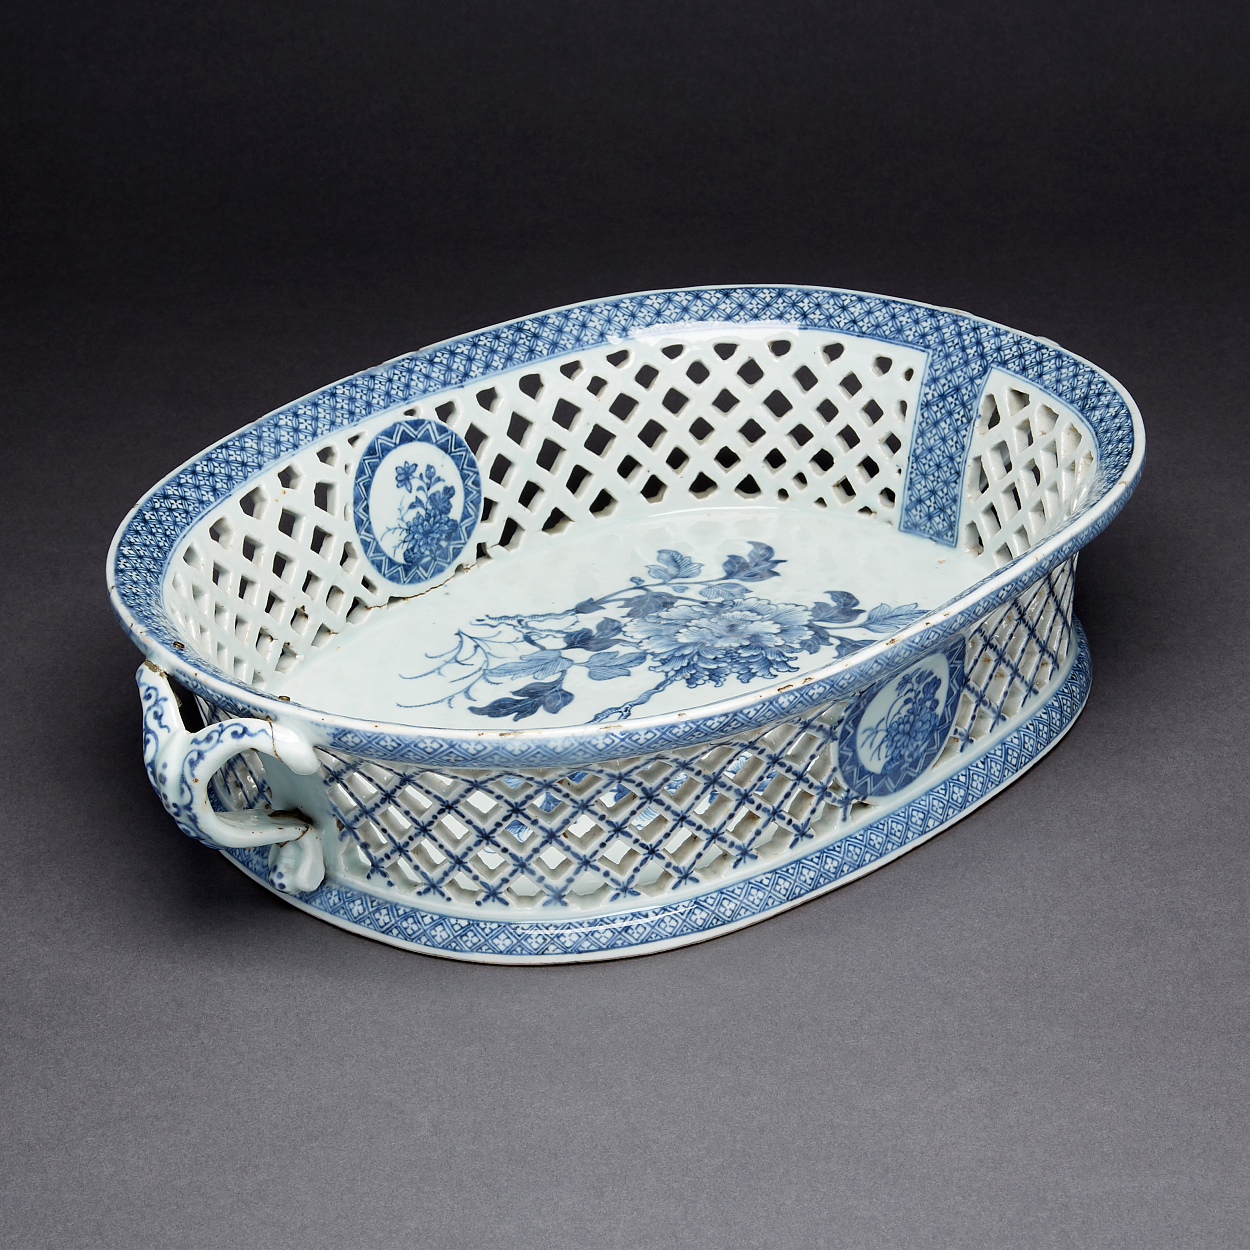 A Blue and White Reticulated Fruit Basket